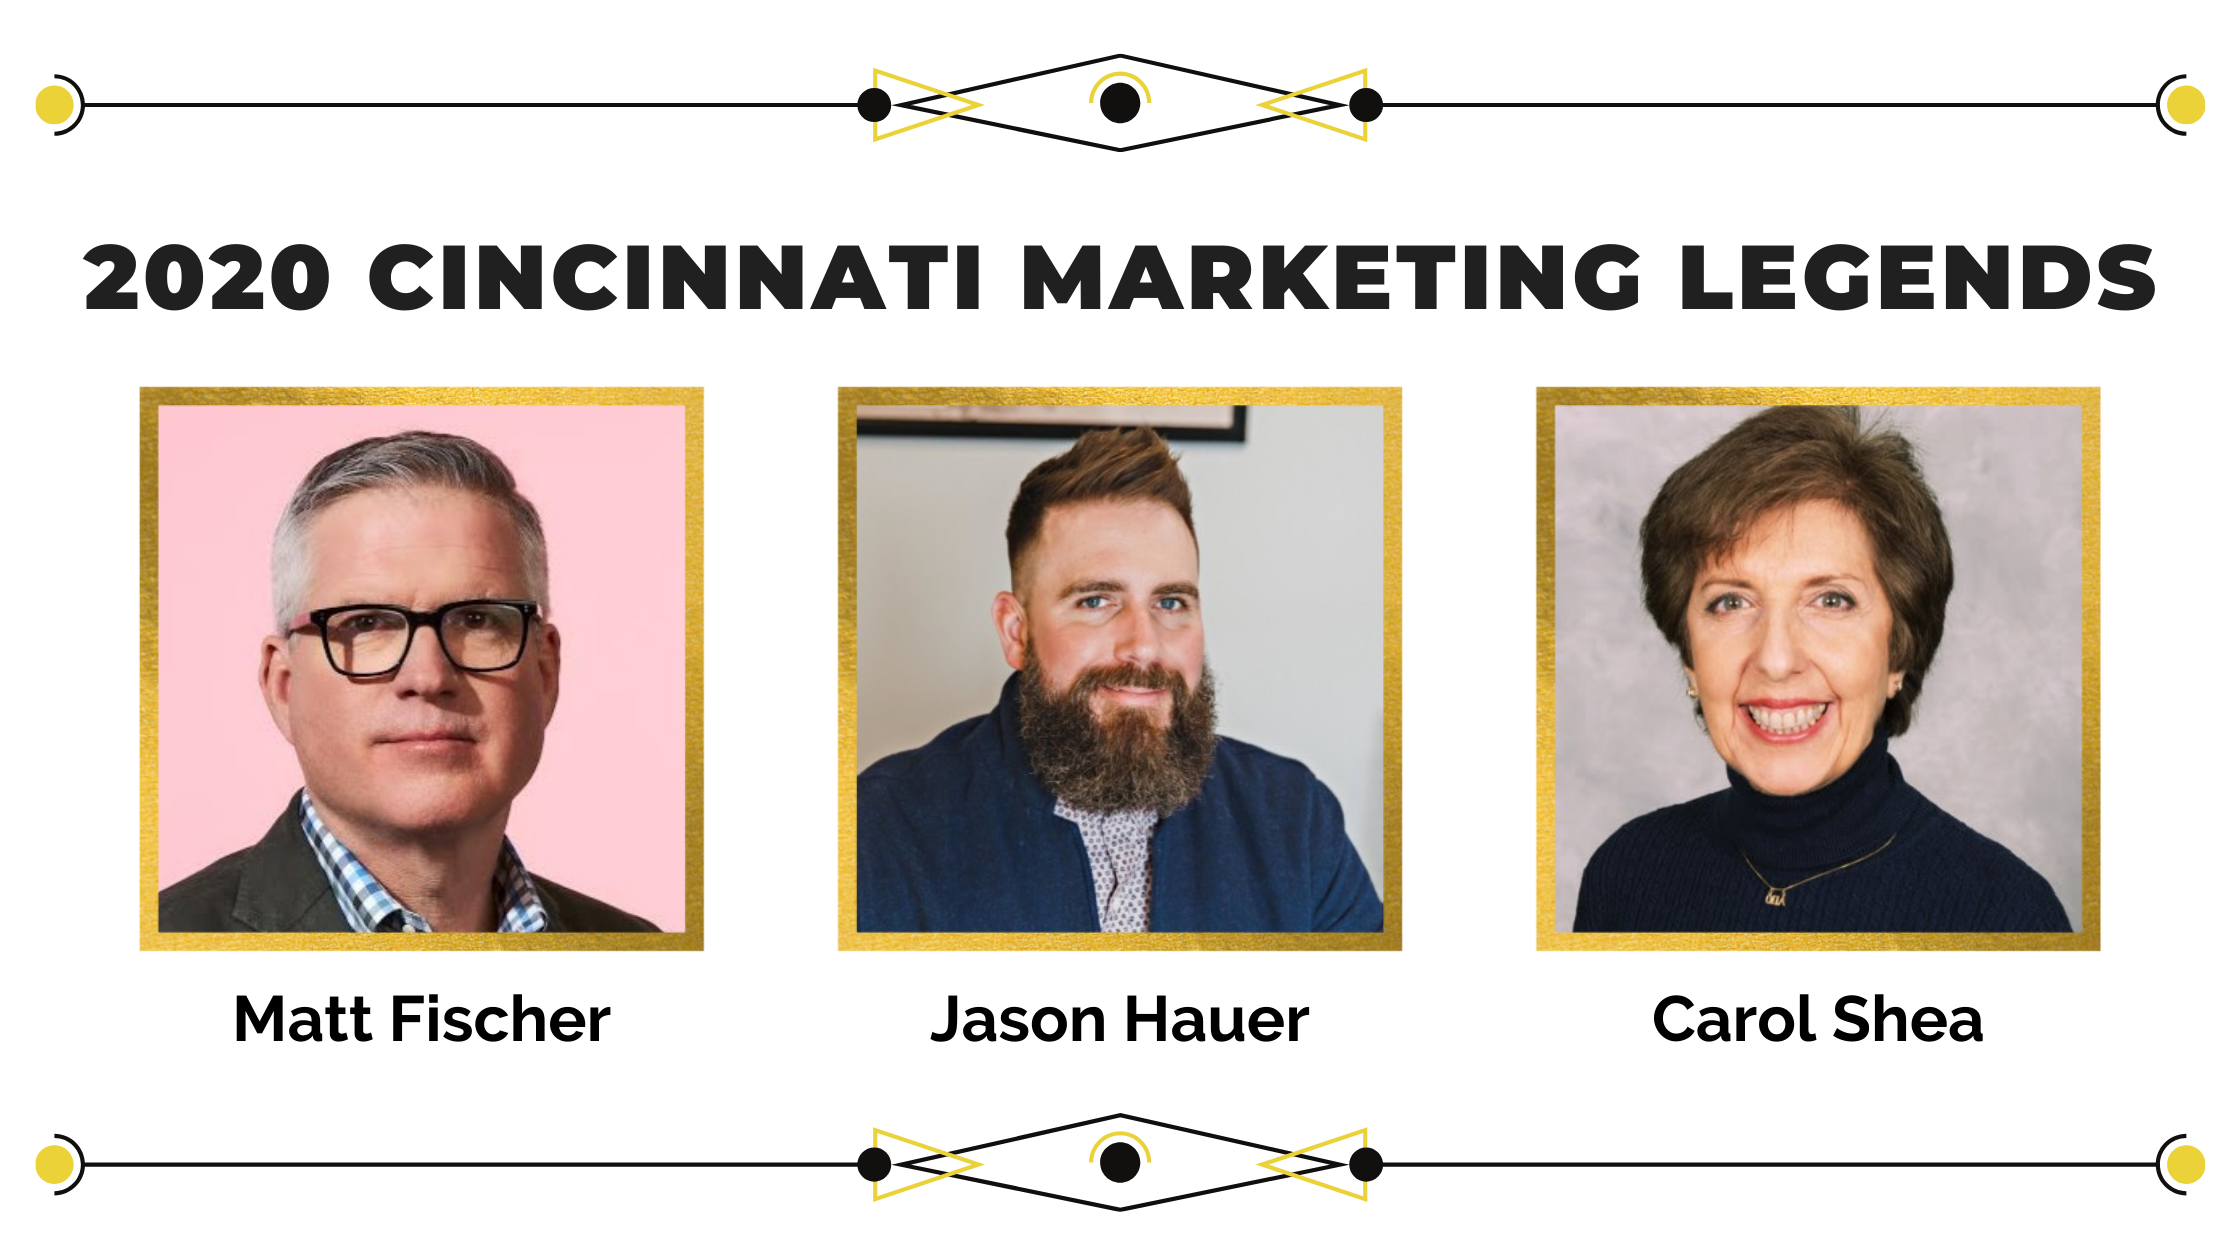 2020 Cincinnati Marketing Legends